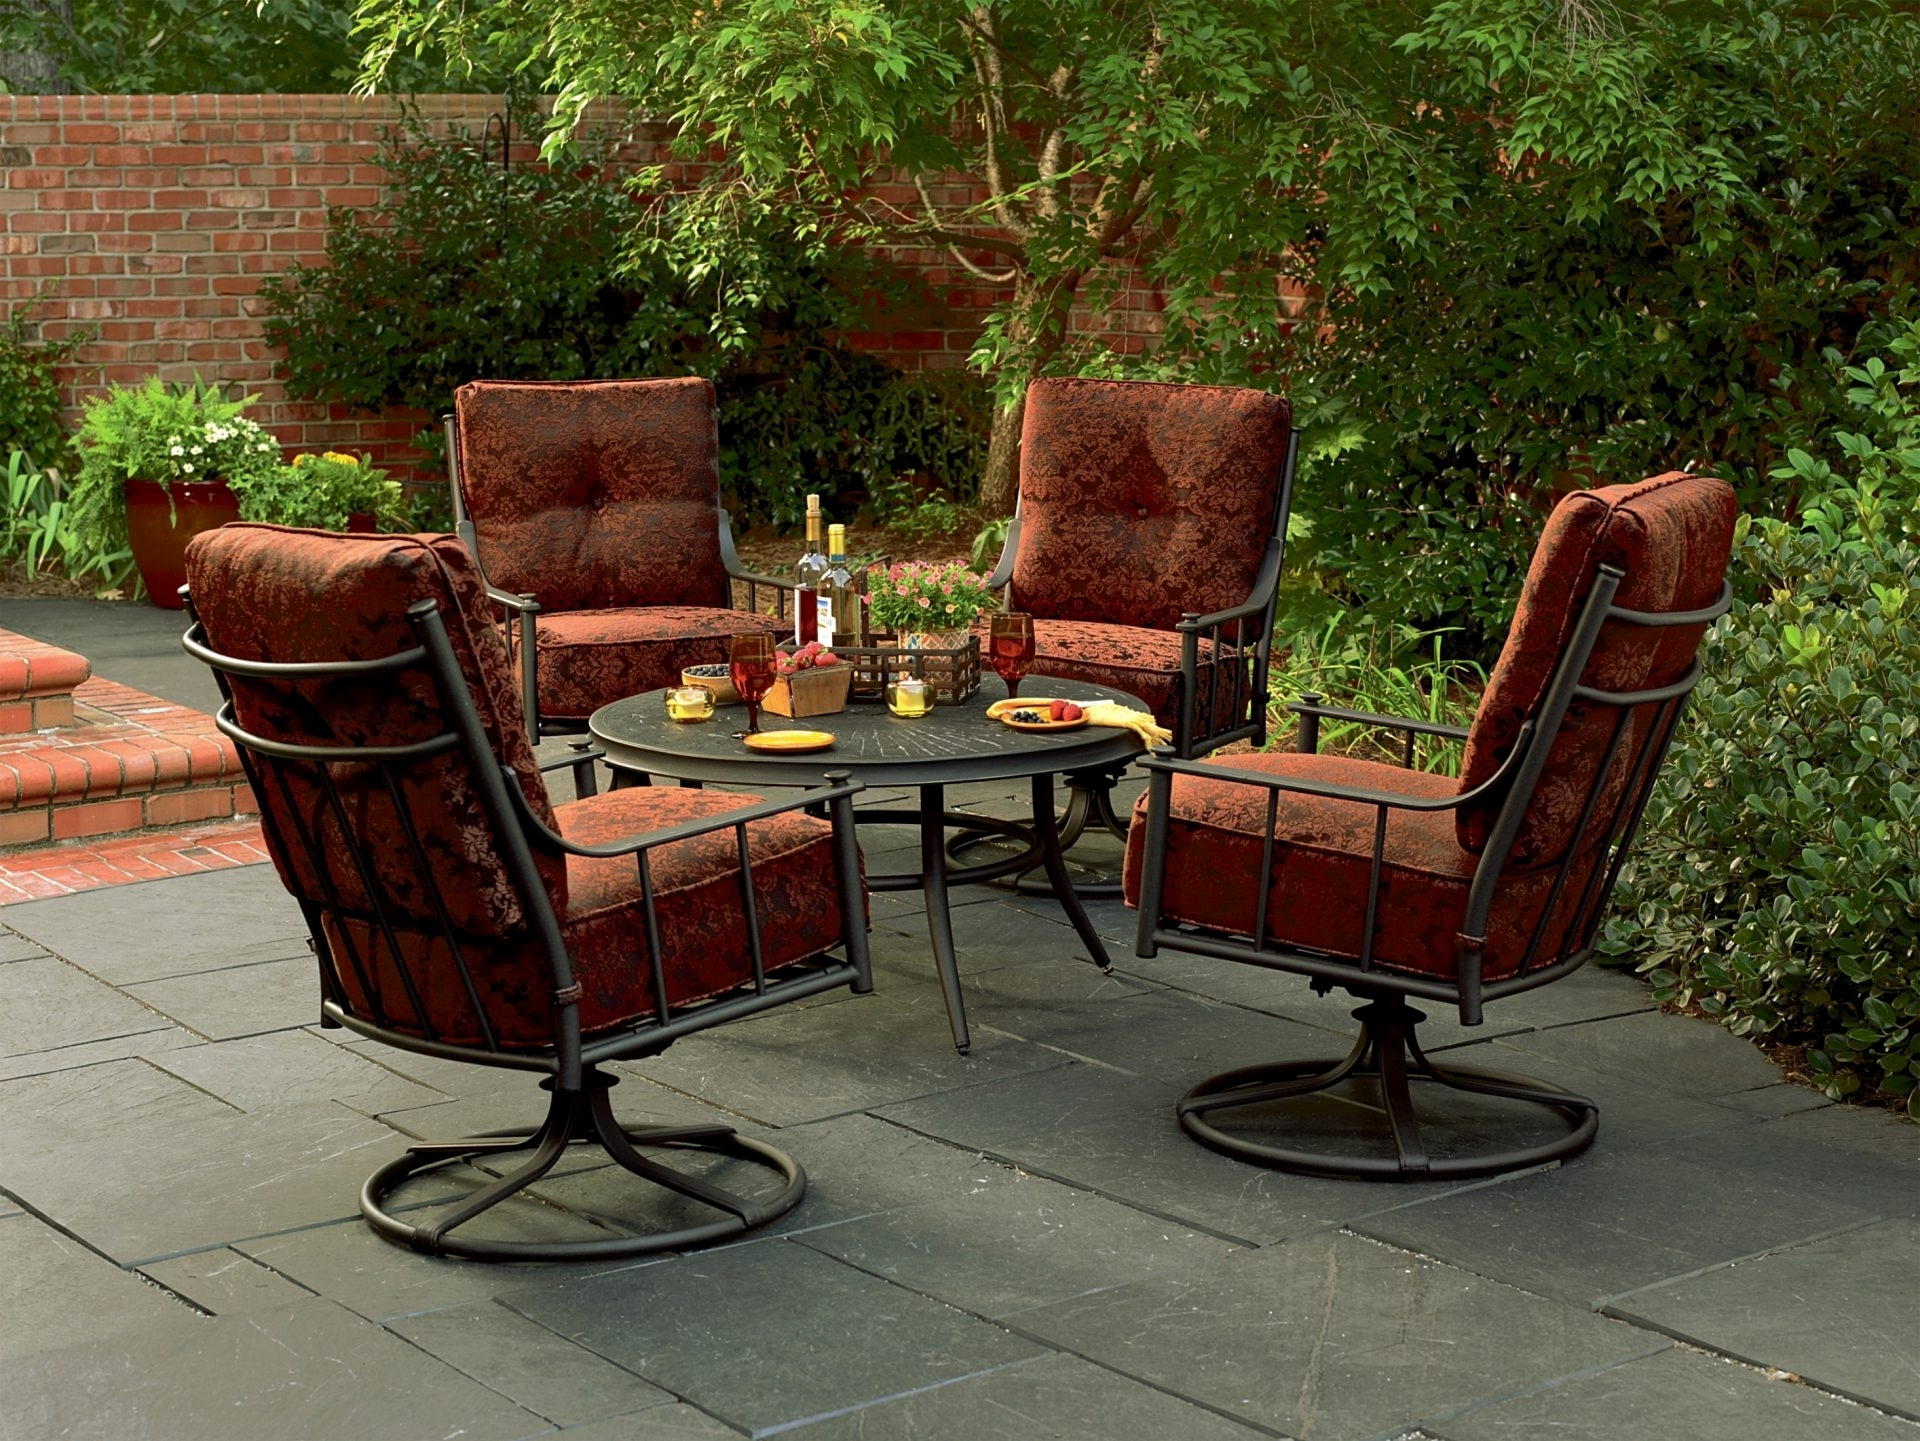 Widely Used Patio Conversation Sets With Swivel Chairs F53x On Creative Small Inside Patio Conversation Sets For Small Spaces (View 16 of 20)